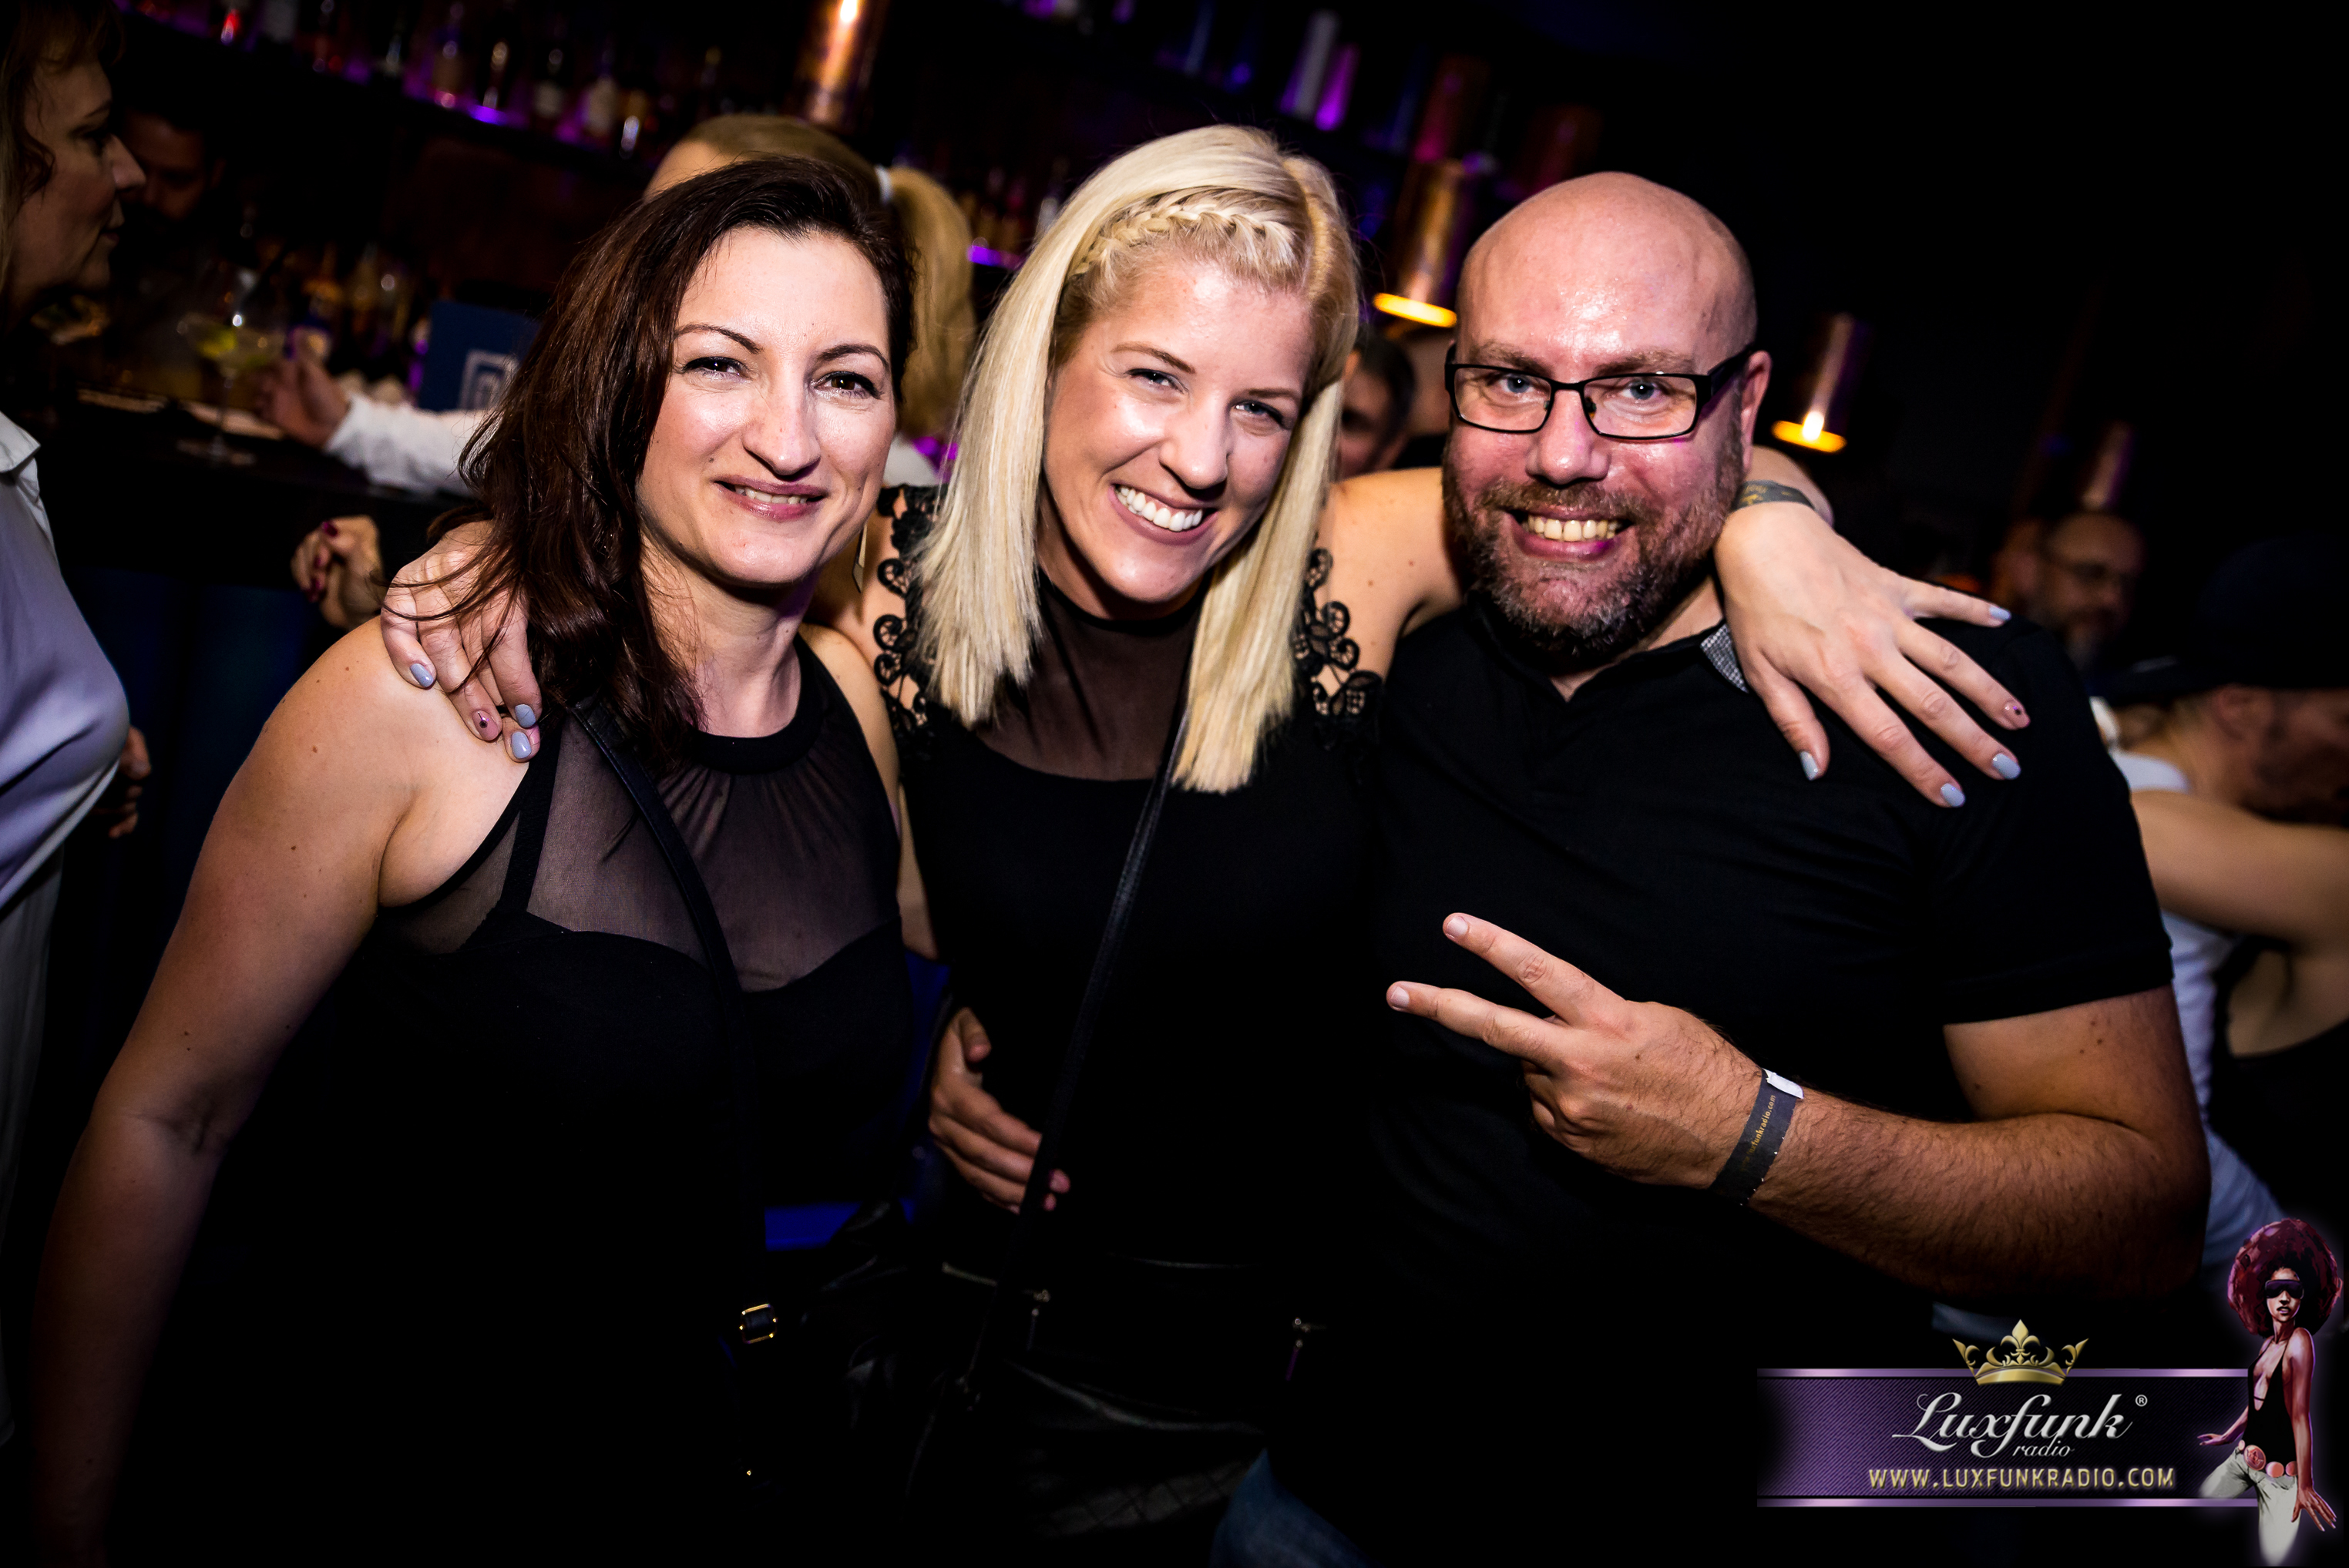 luxfunk-radio-funky-party-20191108-lock-budapest-1154